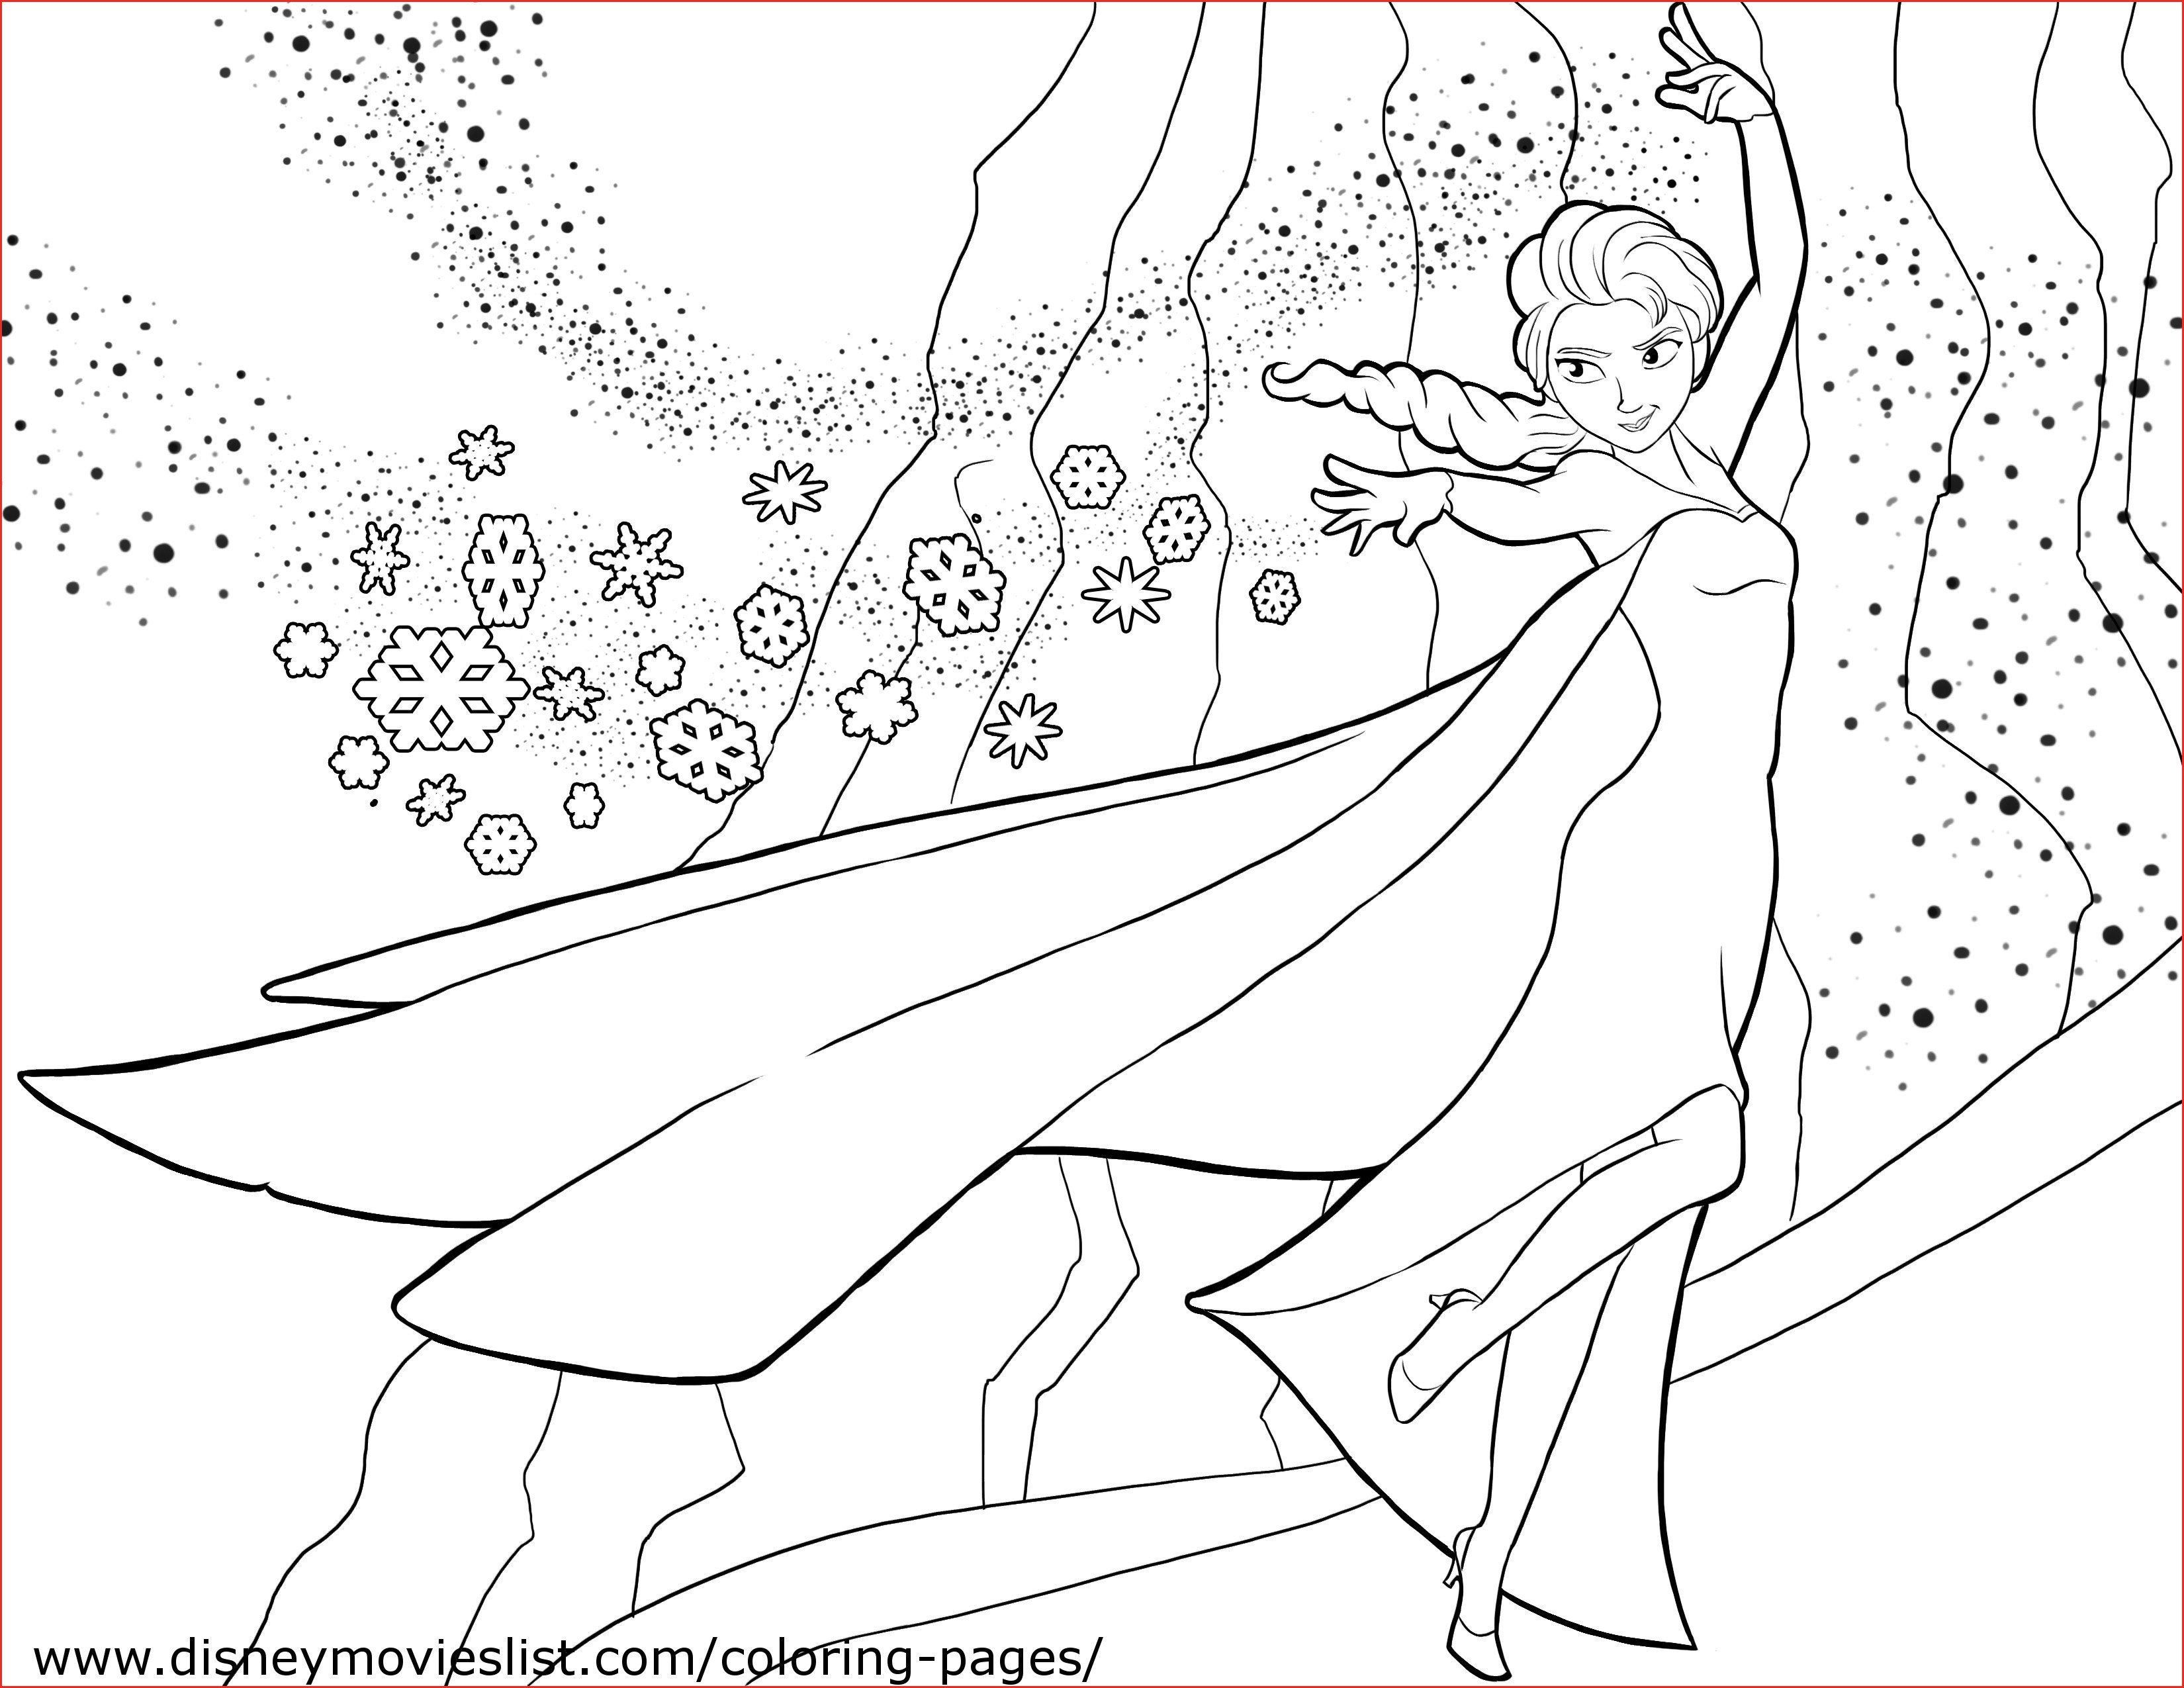 Elsa And Anna Coloring Pages New Elsa Coloring Pages 18unique Frozen Coloring Pages Free Clip In 2020 Frozen Coloring Pages Frozen Coloring Princess Coloring Pages